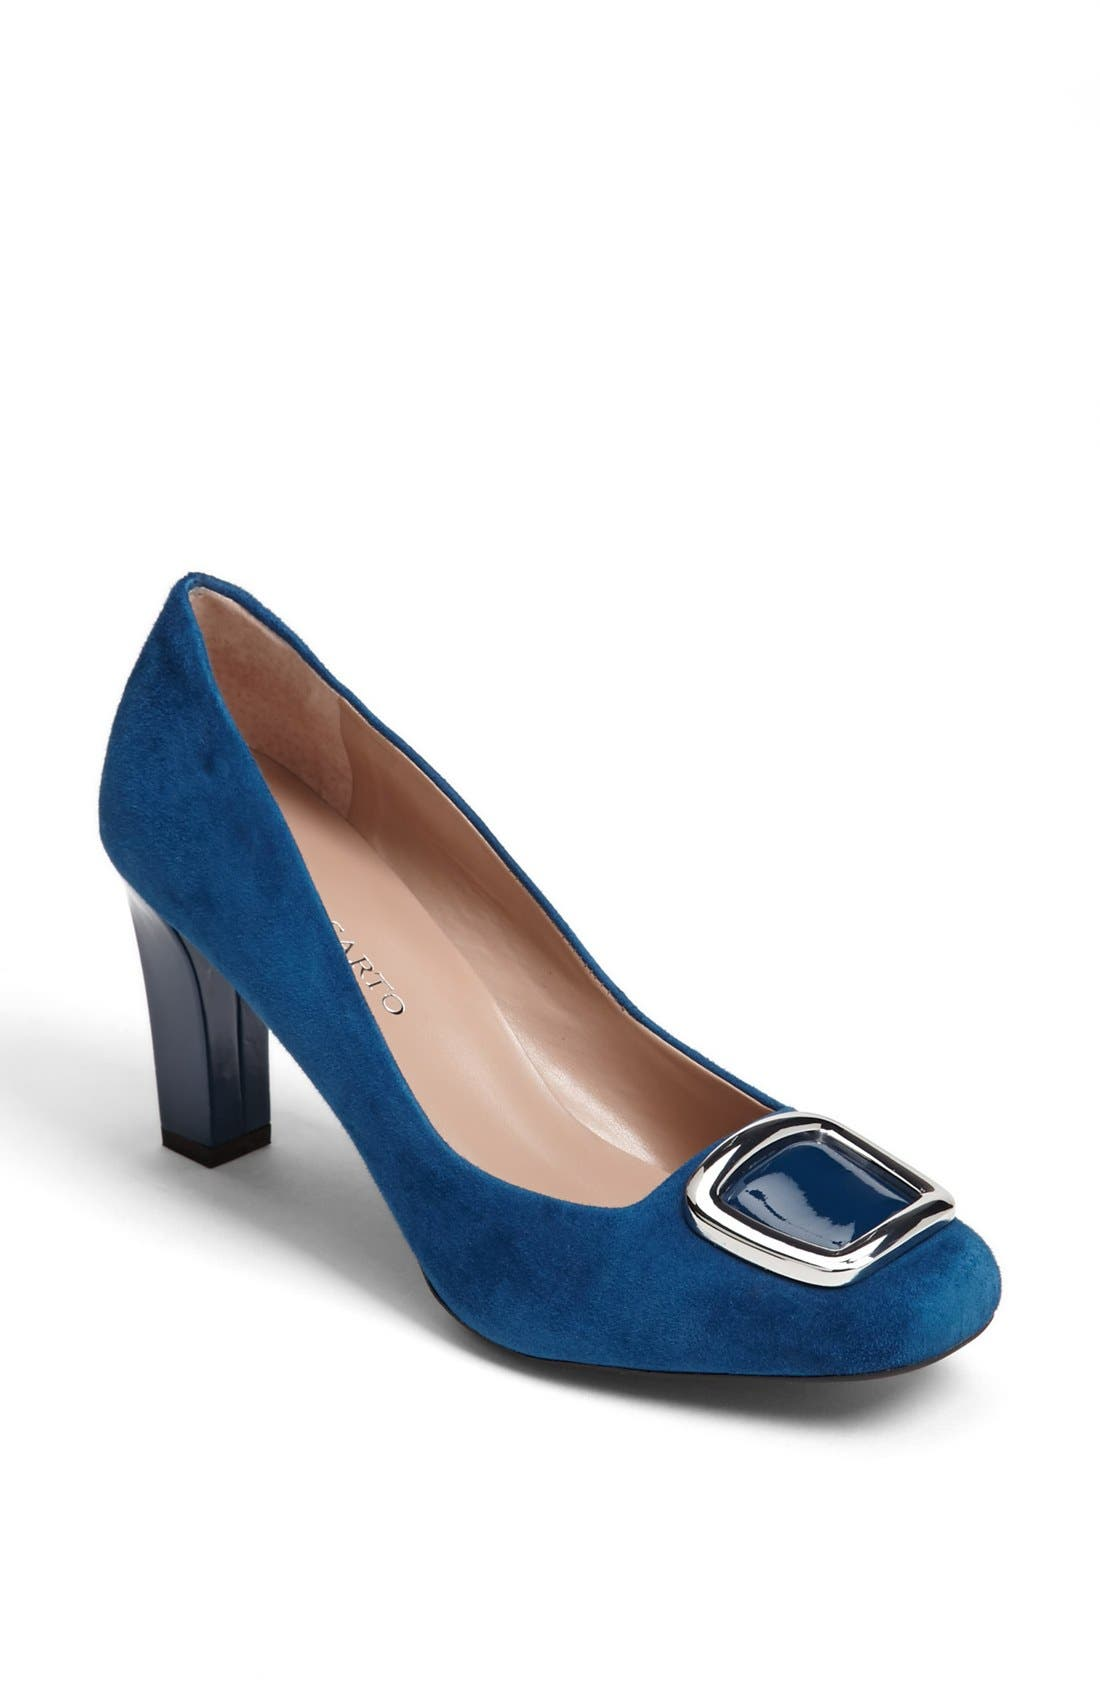 Alternate Image 1 Selected - Franco Sarto 'Ursa' Pump